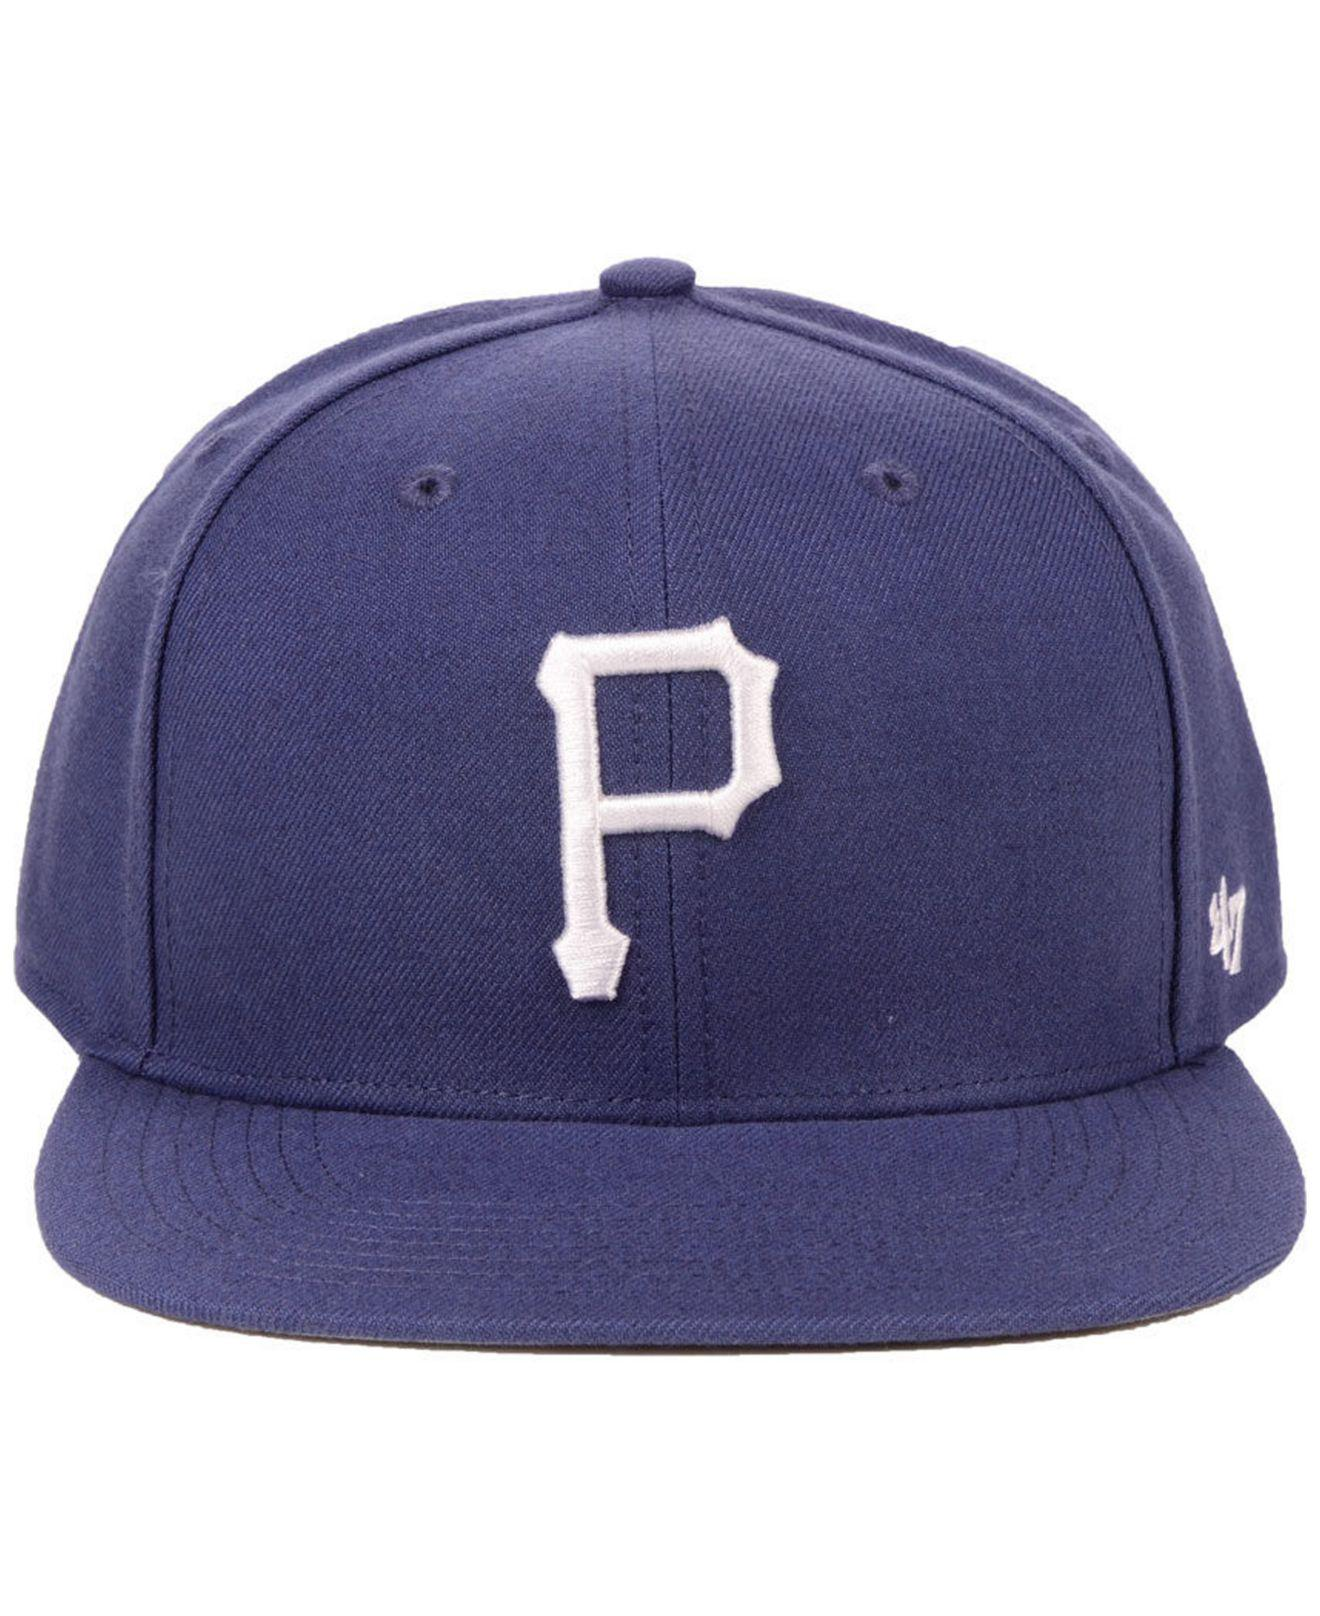 sports shoes 4ed57 25d45 Lyst - 47 Brand Pittsburgh Pirates Autumn Snapback Cap in Blue for Men